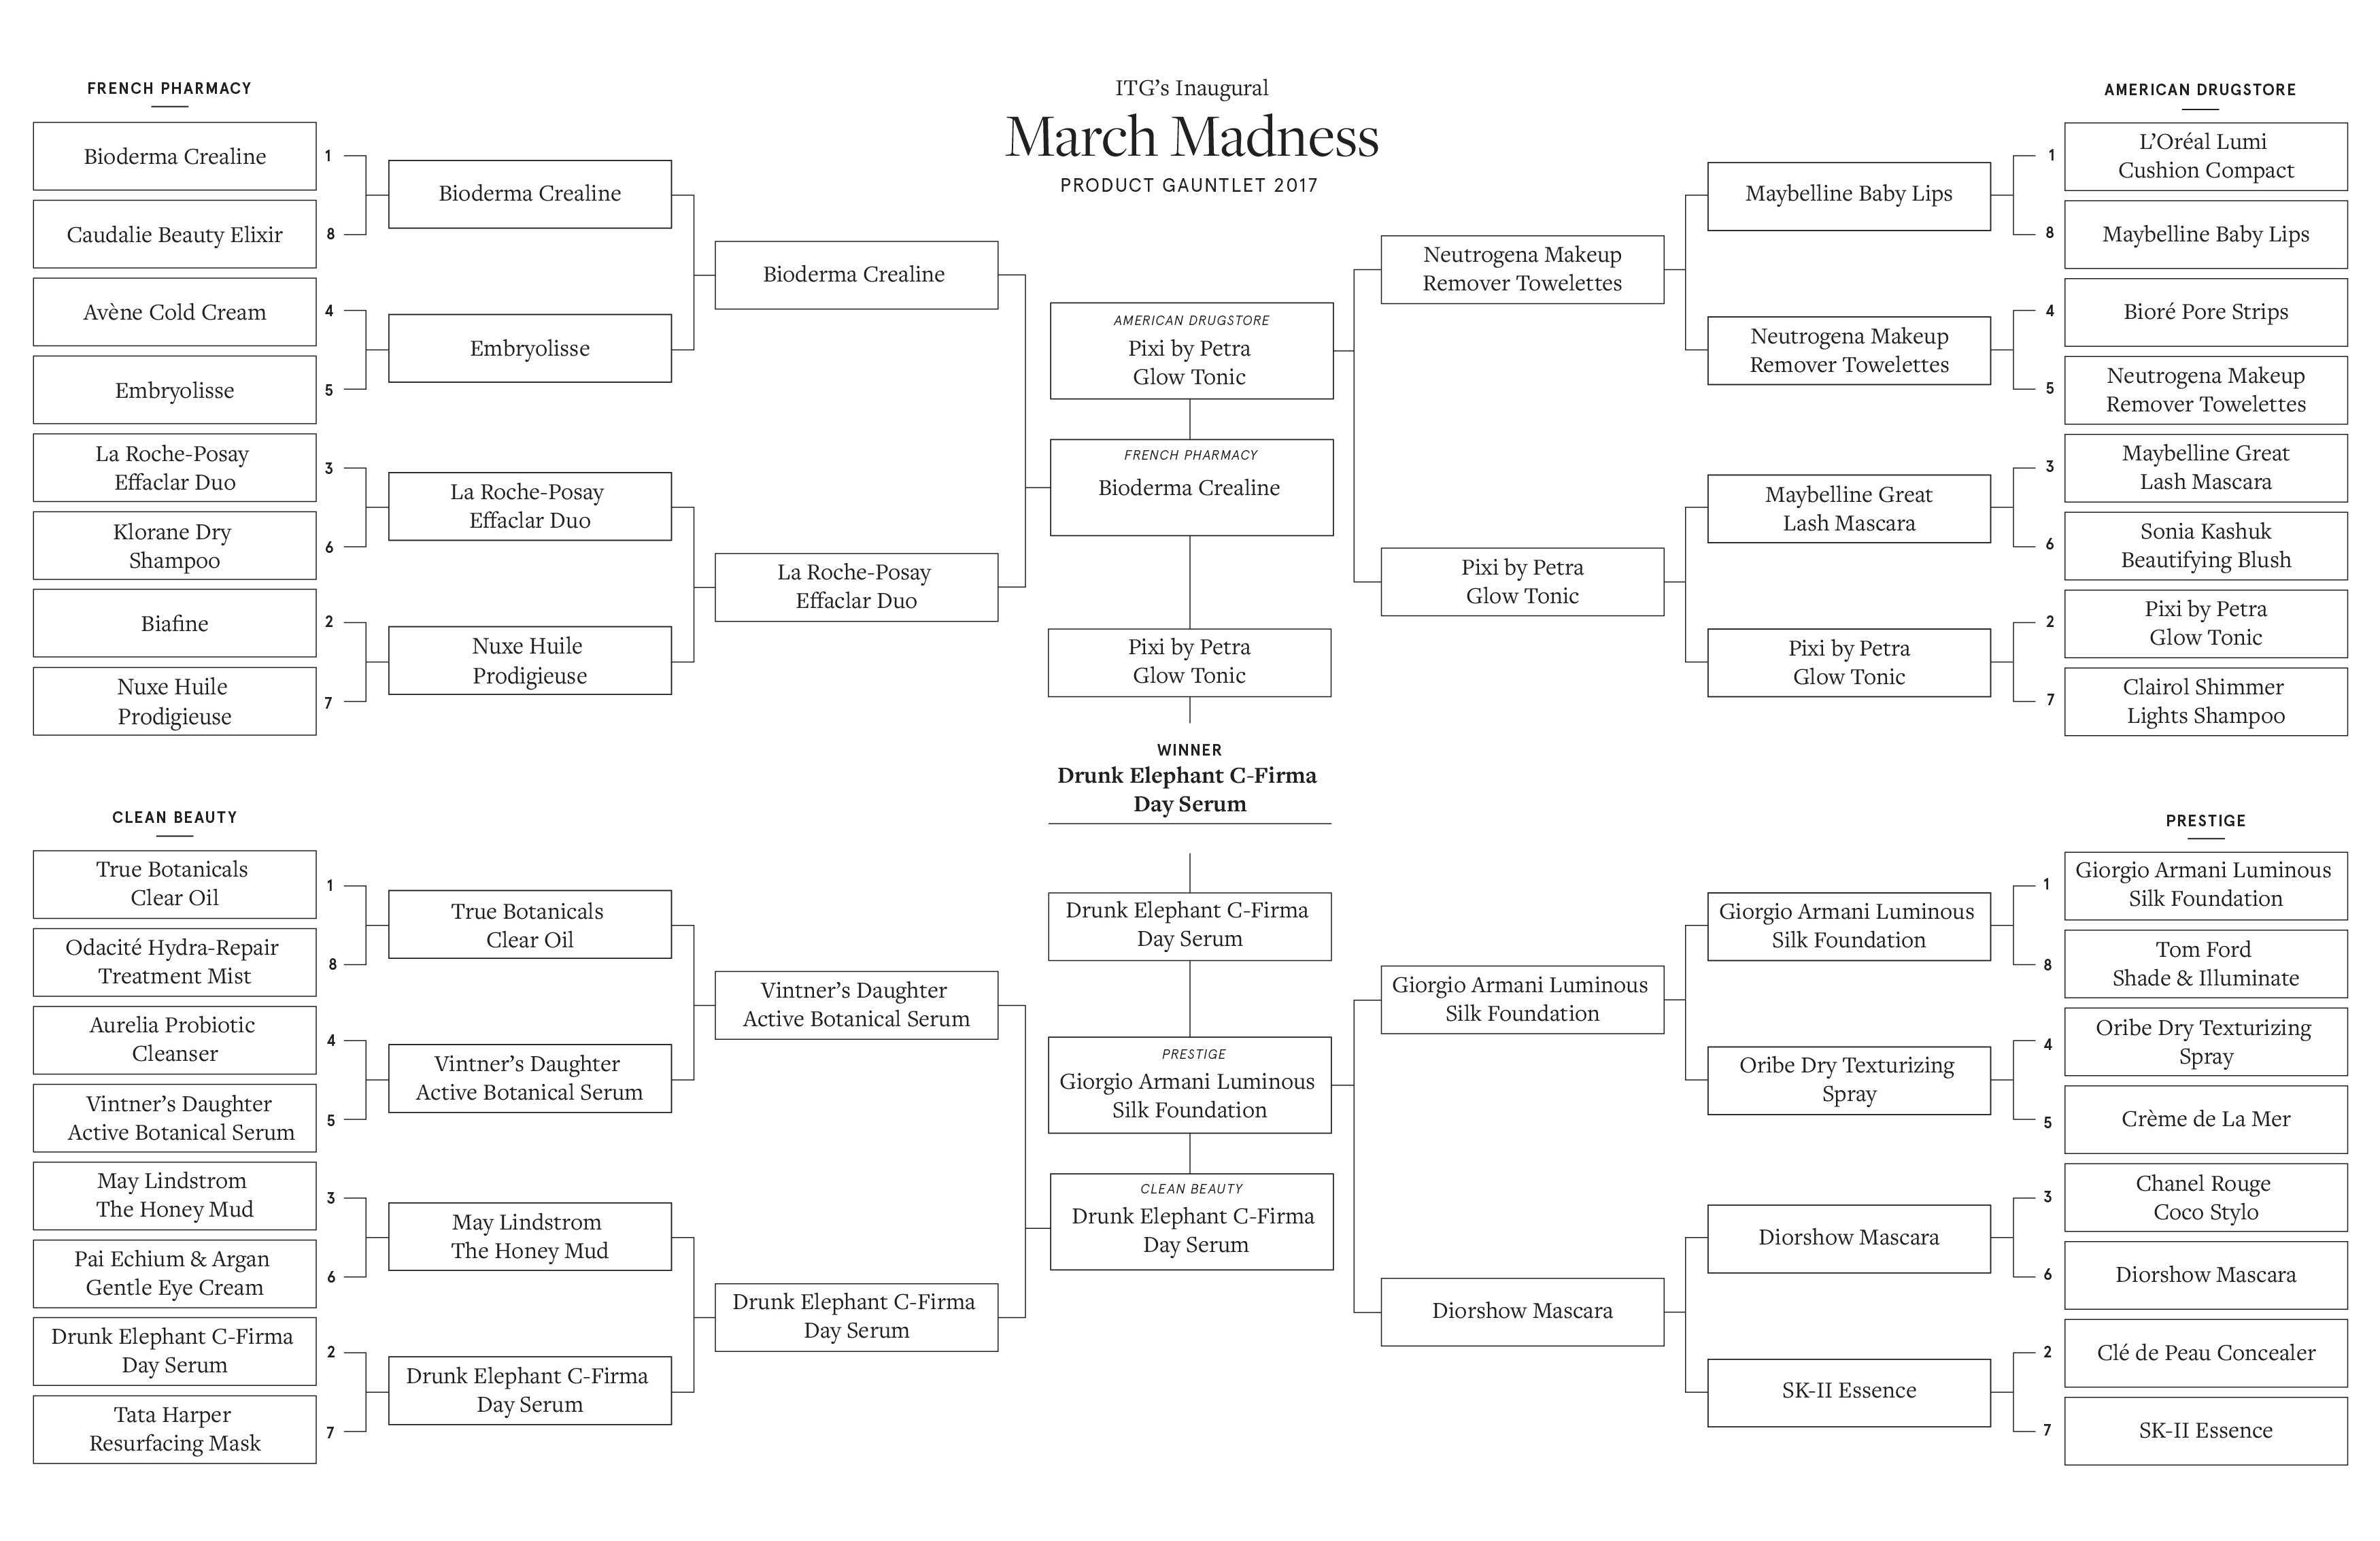 2017 MarchMadnessBracket-ITG Hi-Res Final